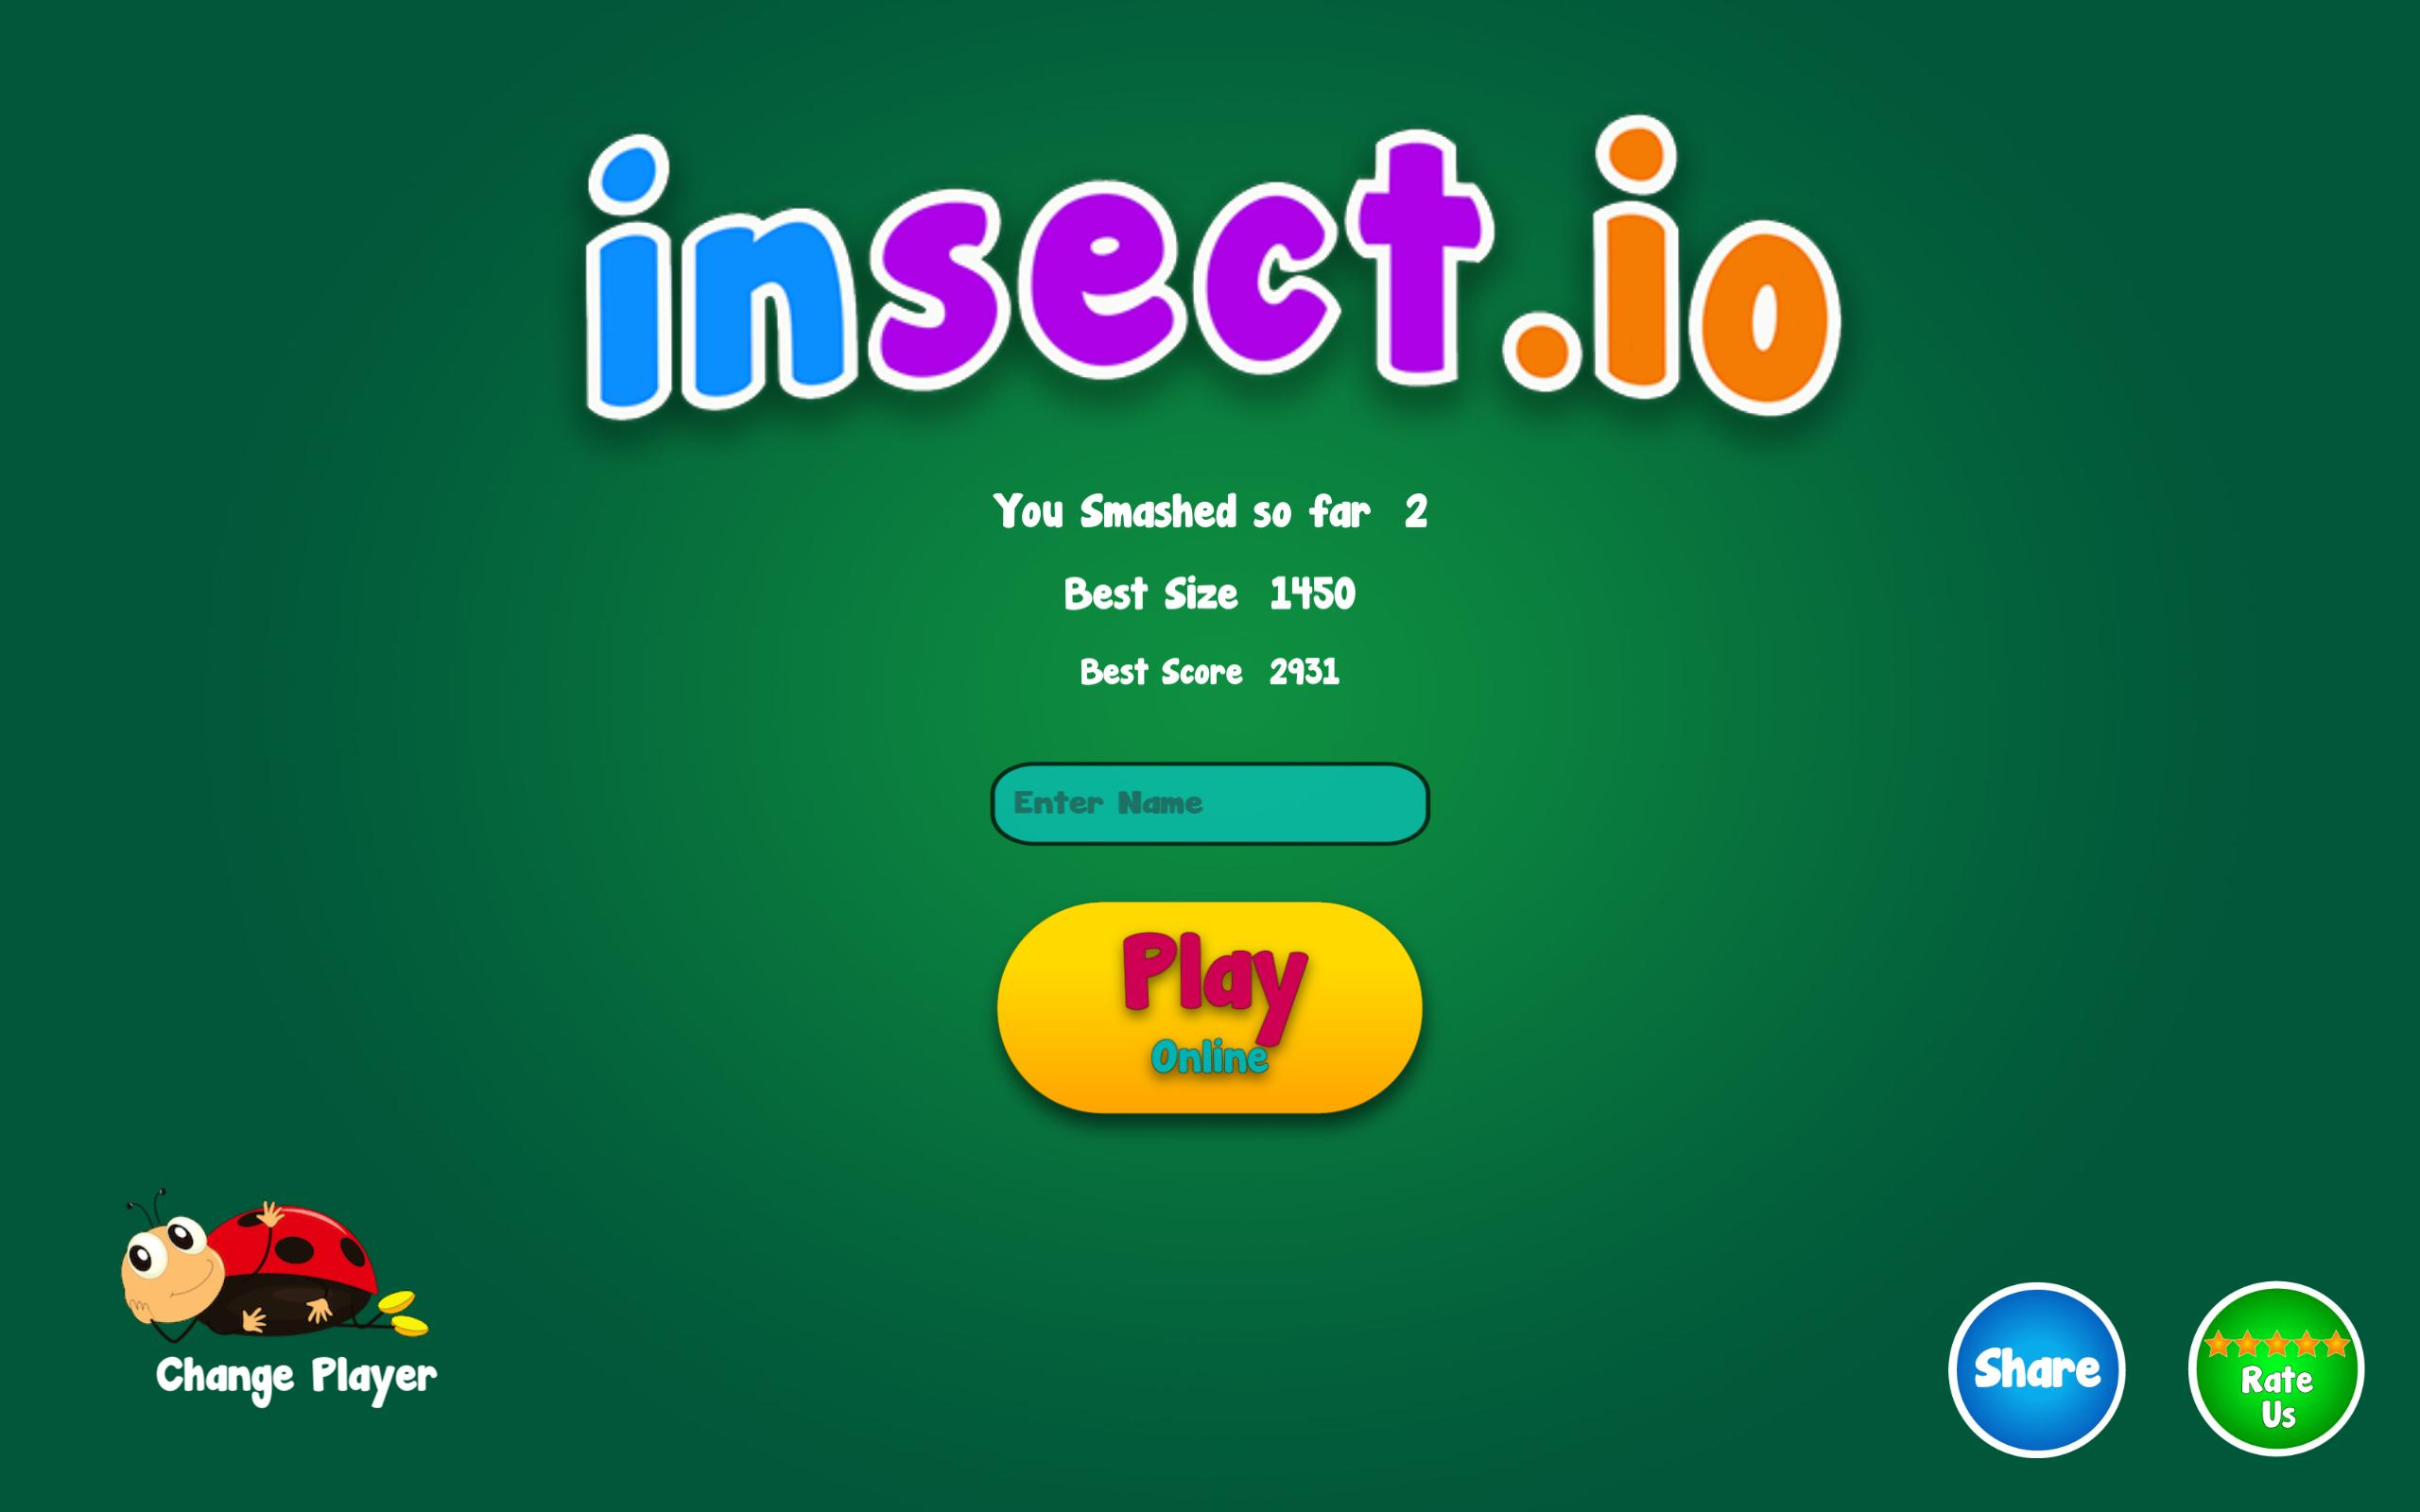 insect io - a slither io game for Android - APK Download